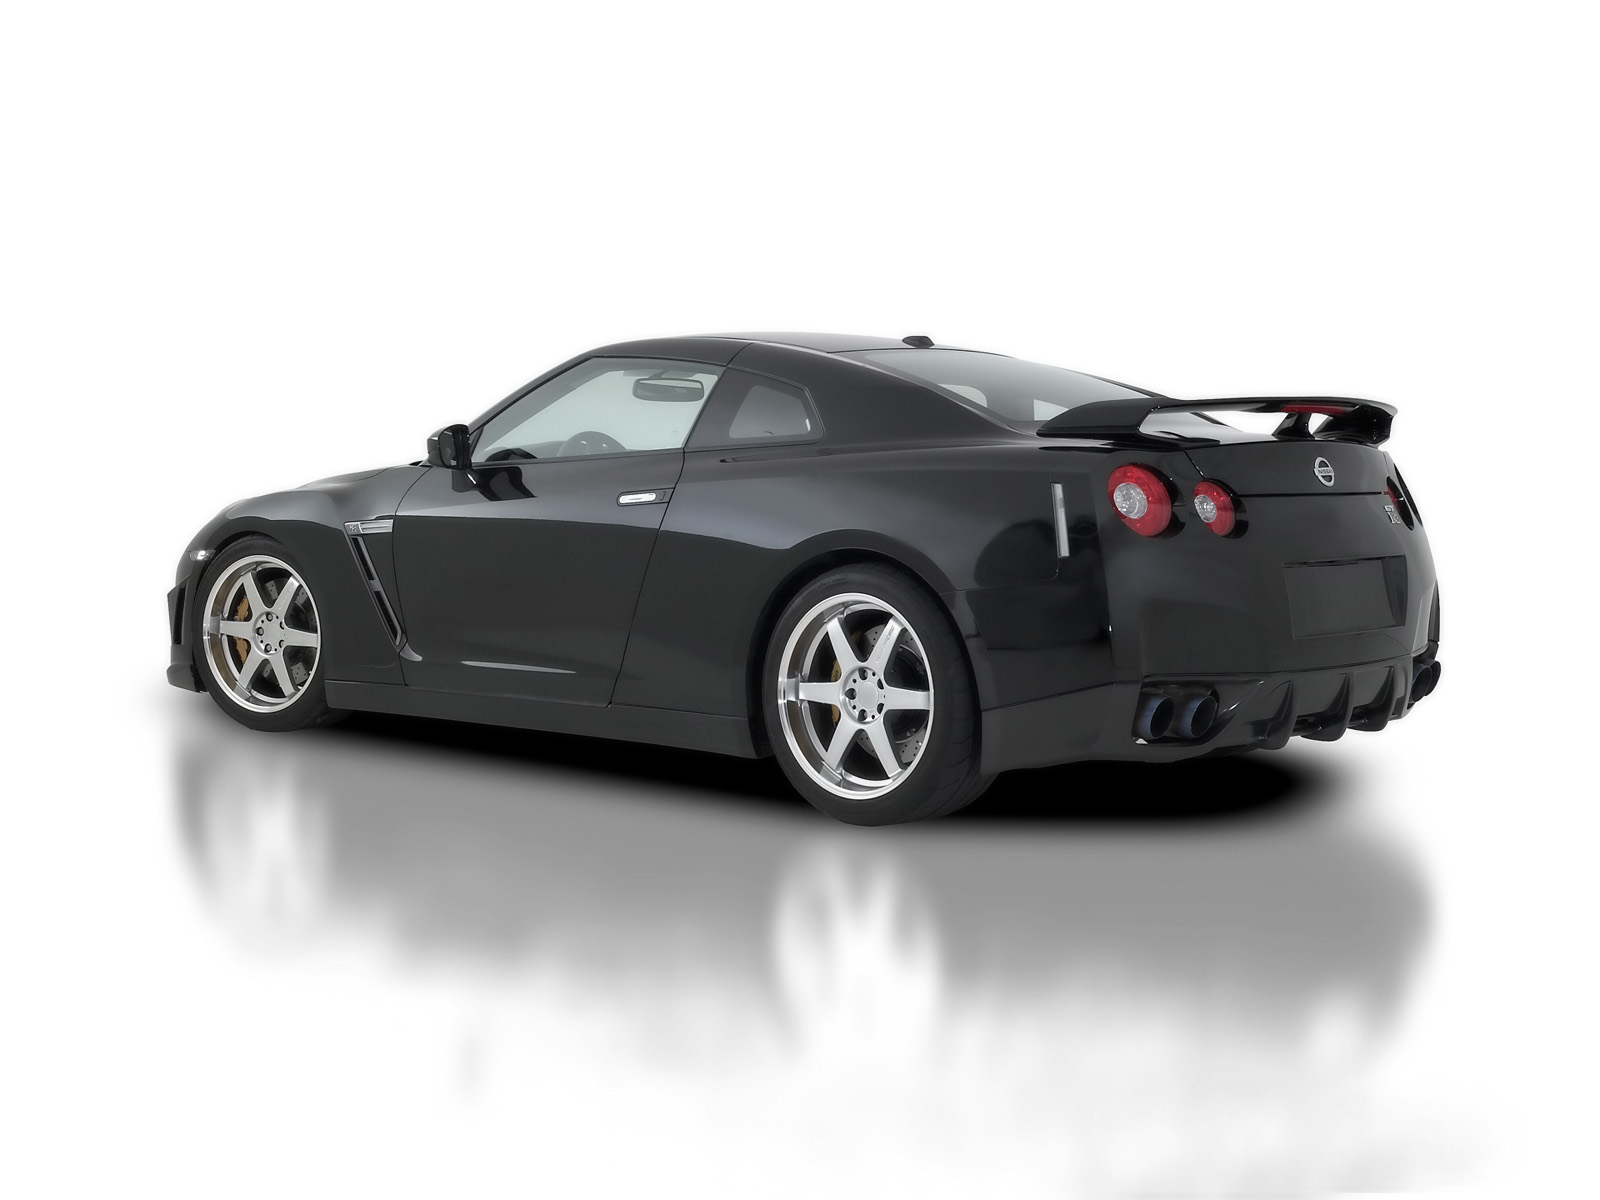 Nissan Skyline R35 Wallpaper 5809 Hd Wallpapers in Cars   Imagescicom 1600x1200